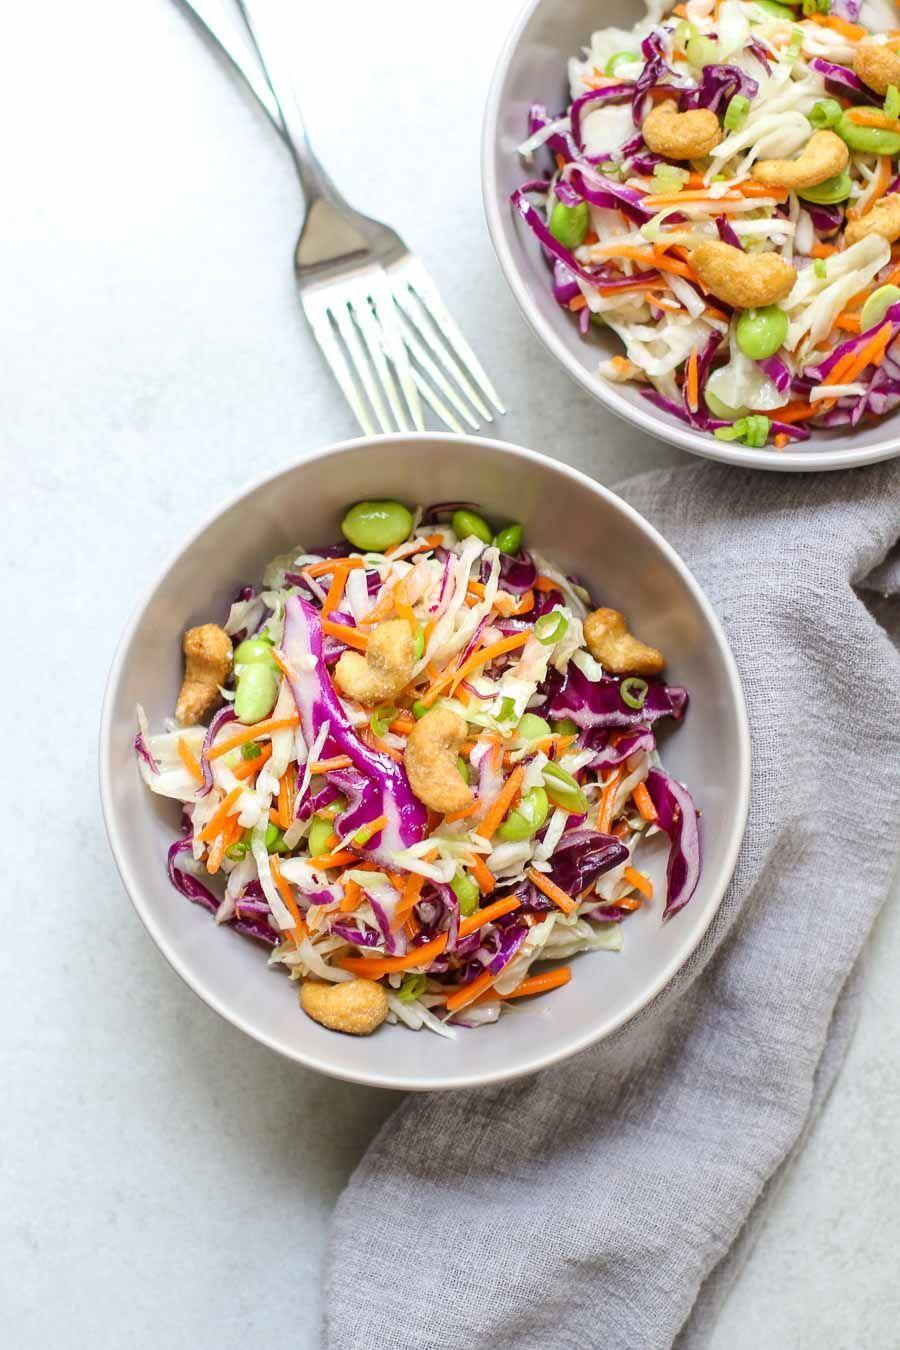 """<p>This 10-minute dinner feels like a life hack. Not only is it quick and easy to make, but it's a sweet and crunch combo you'll definitely be craving from now on.<br><br><a class=""""link rapid-noclick-resp"""" href=""""https://marisamoore.com/crunchy-cashew-cabbage-salad/"""" rel=""""nofollow noopener"""" target=""""_blank"""" data-ylk=""""slk:Get the recipe"""">Get the recipe</a><br><em><br>*Per one serving: 308 cal </em></p>"""